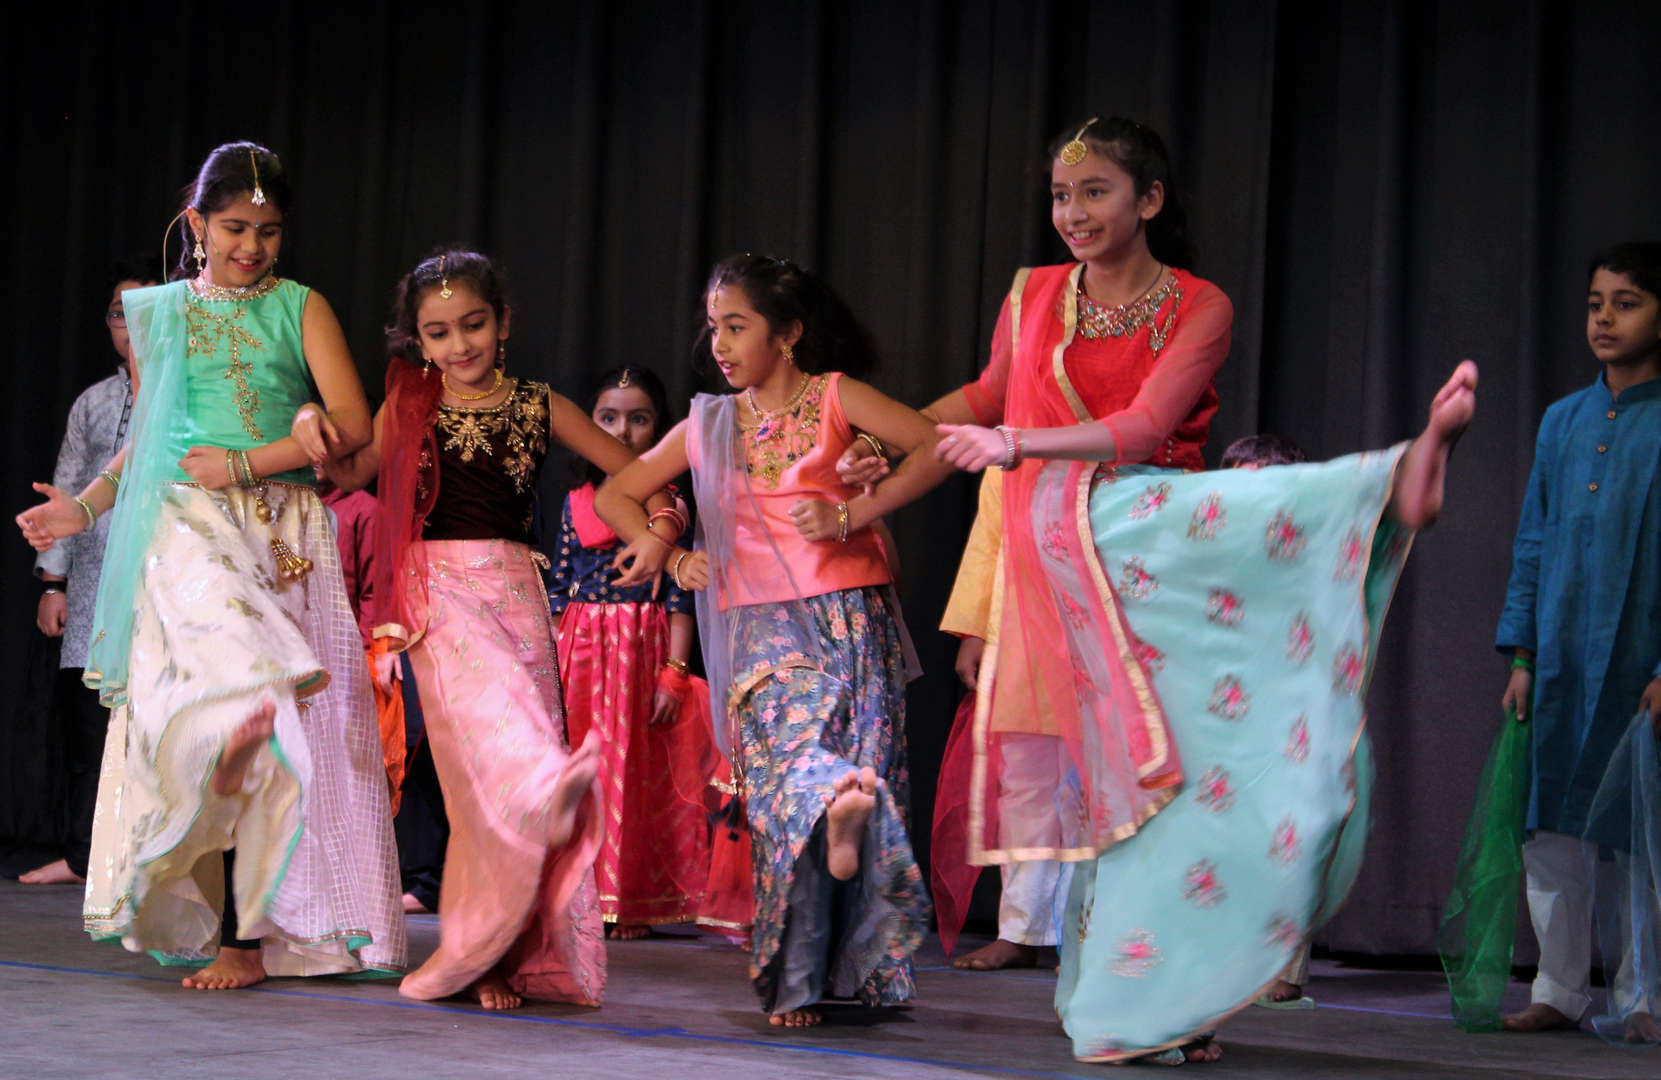 Students give a performance of Indian dancing at One World Evening.